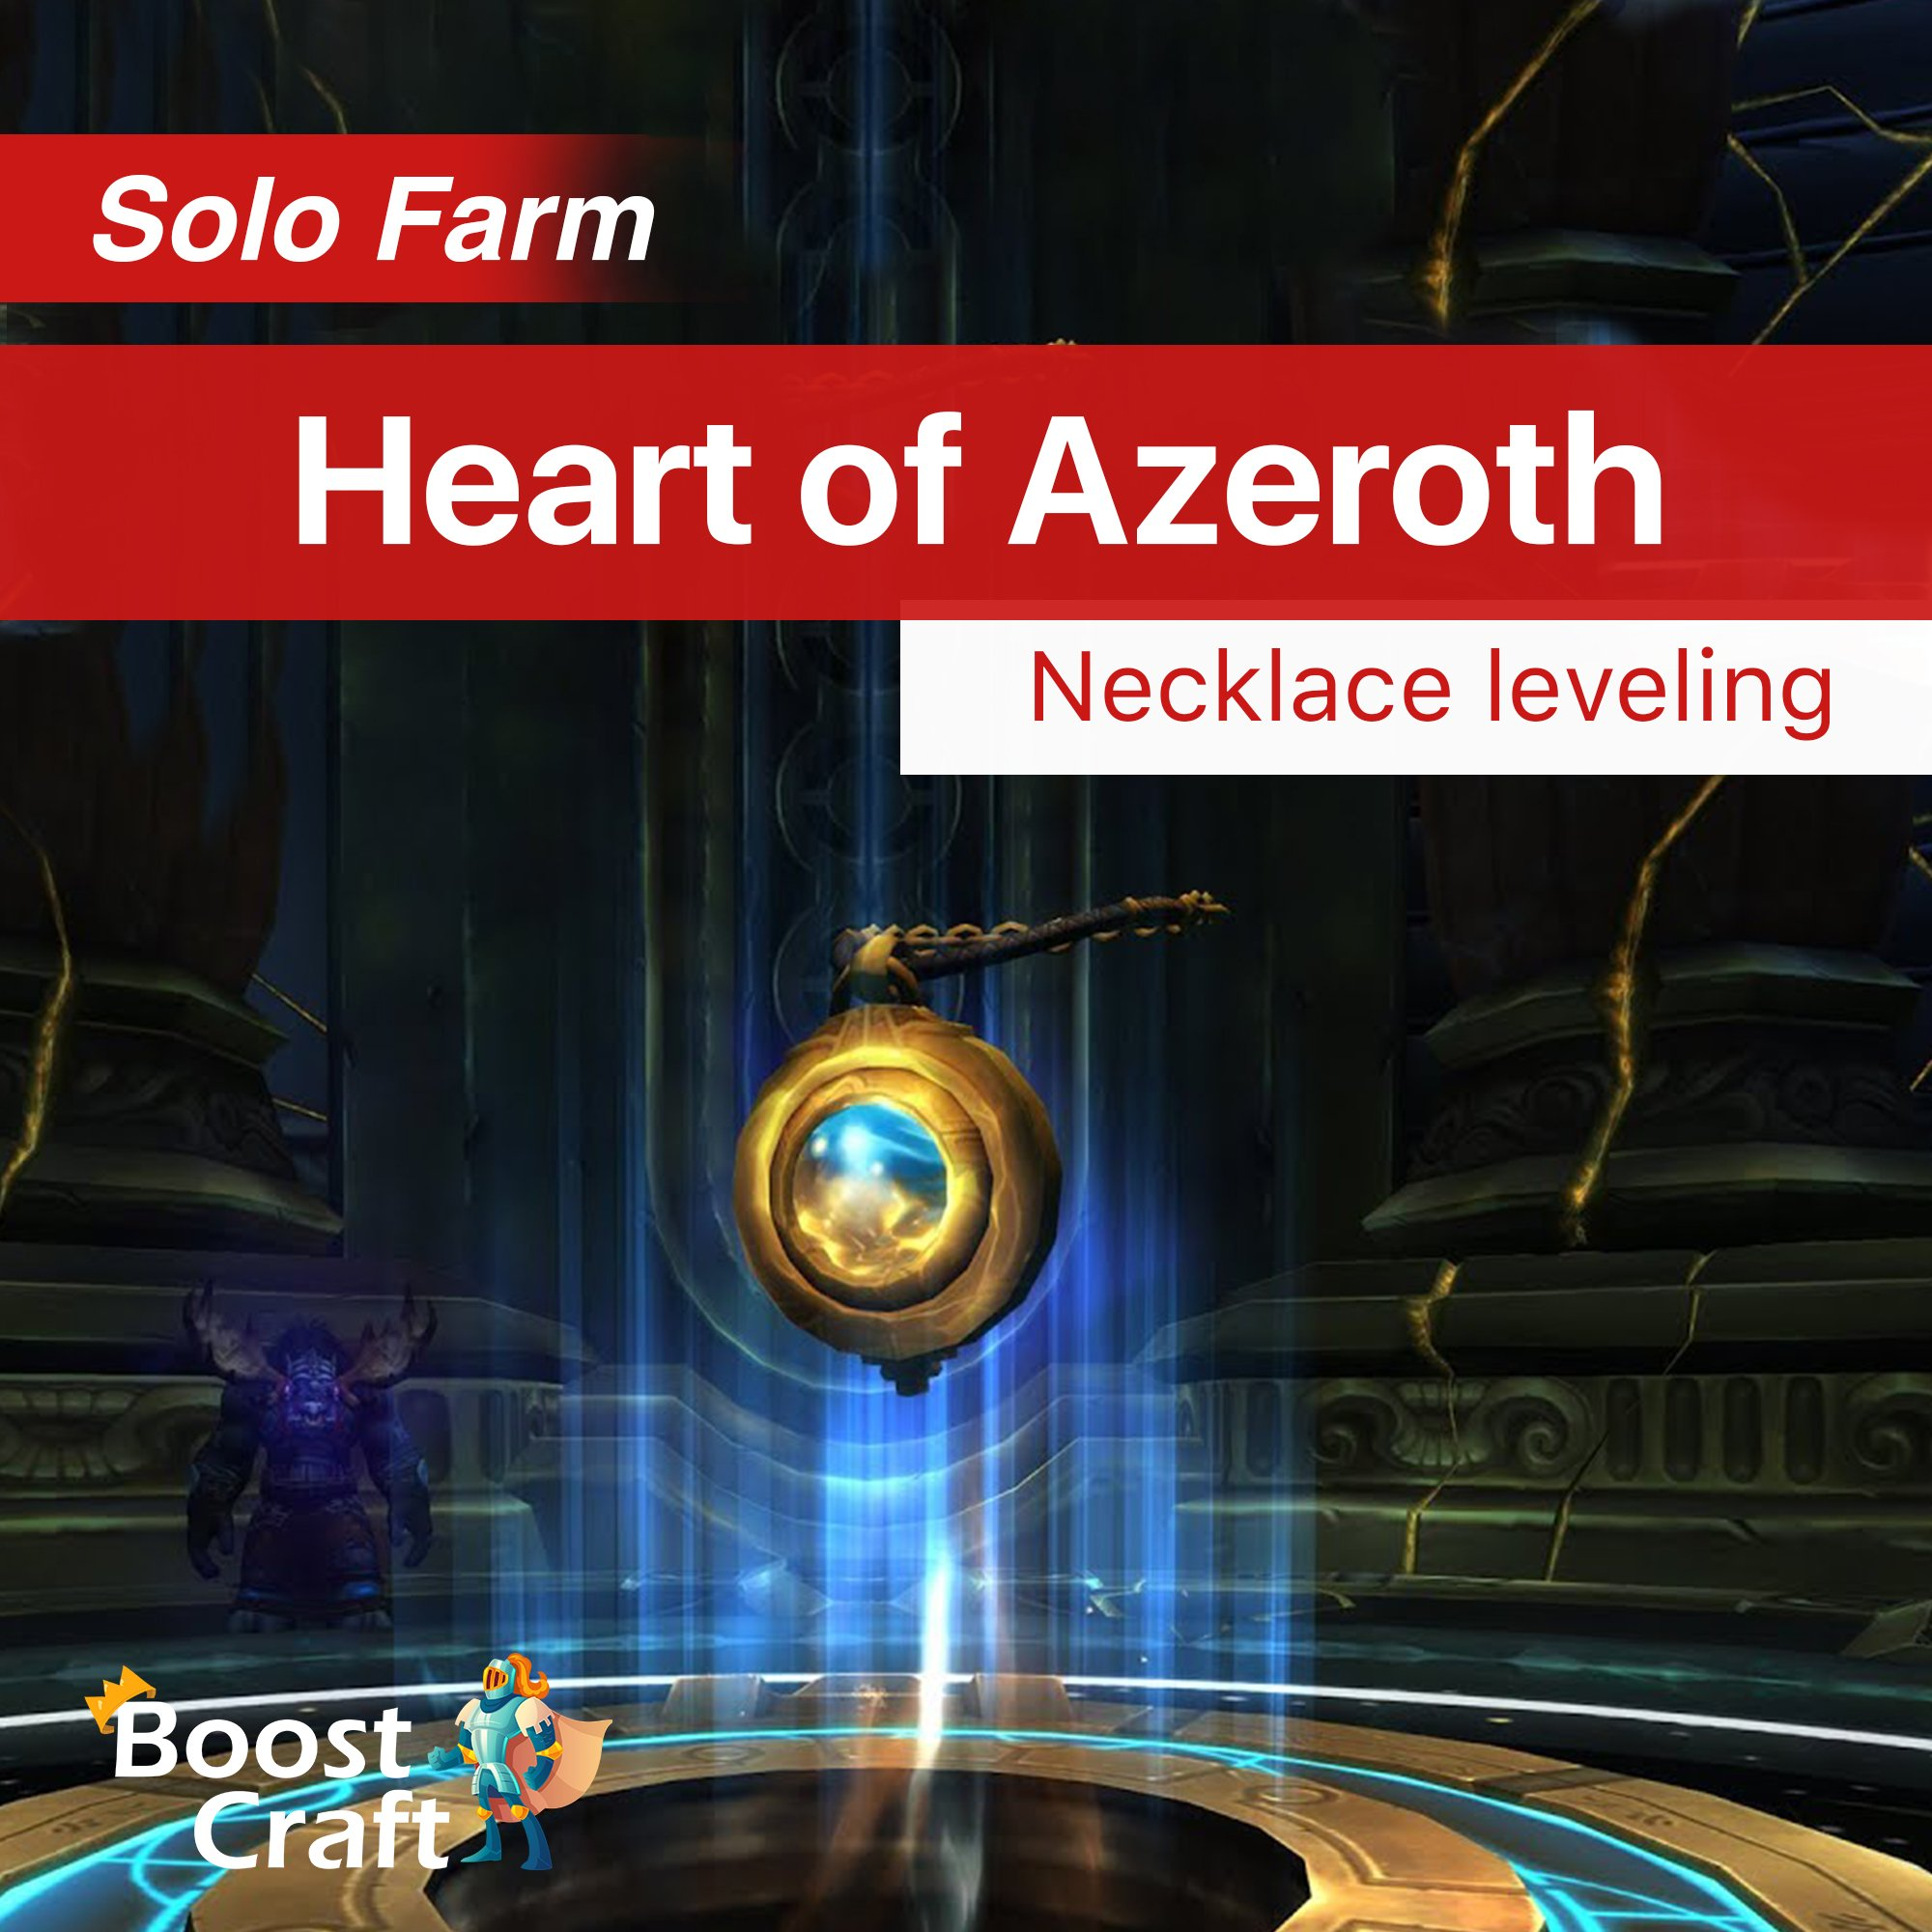 Heart of Azeroth – Neck Level Boost